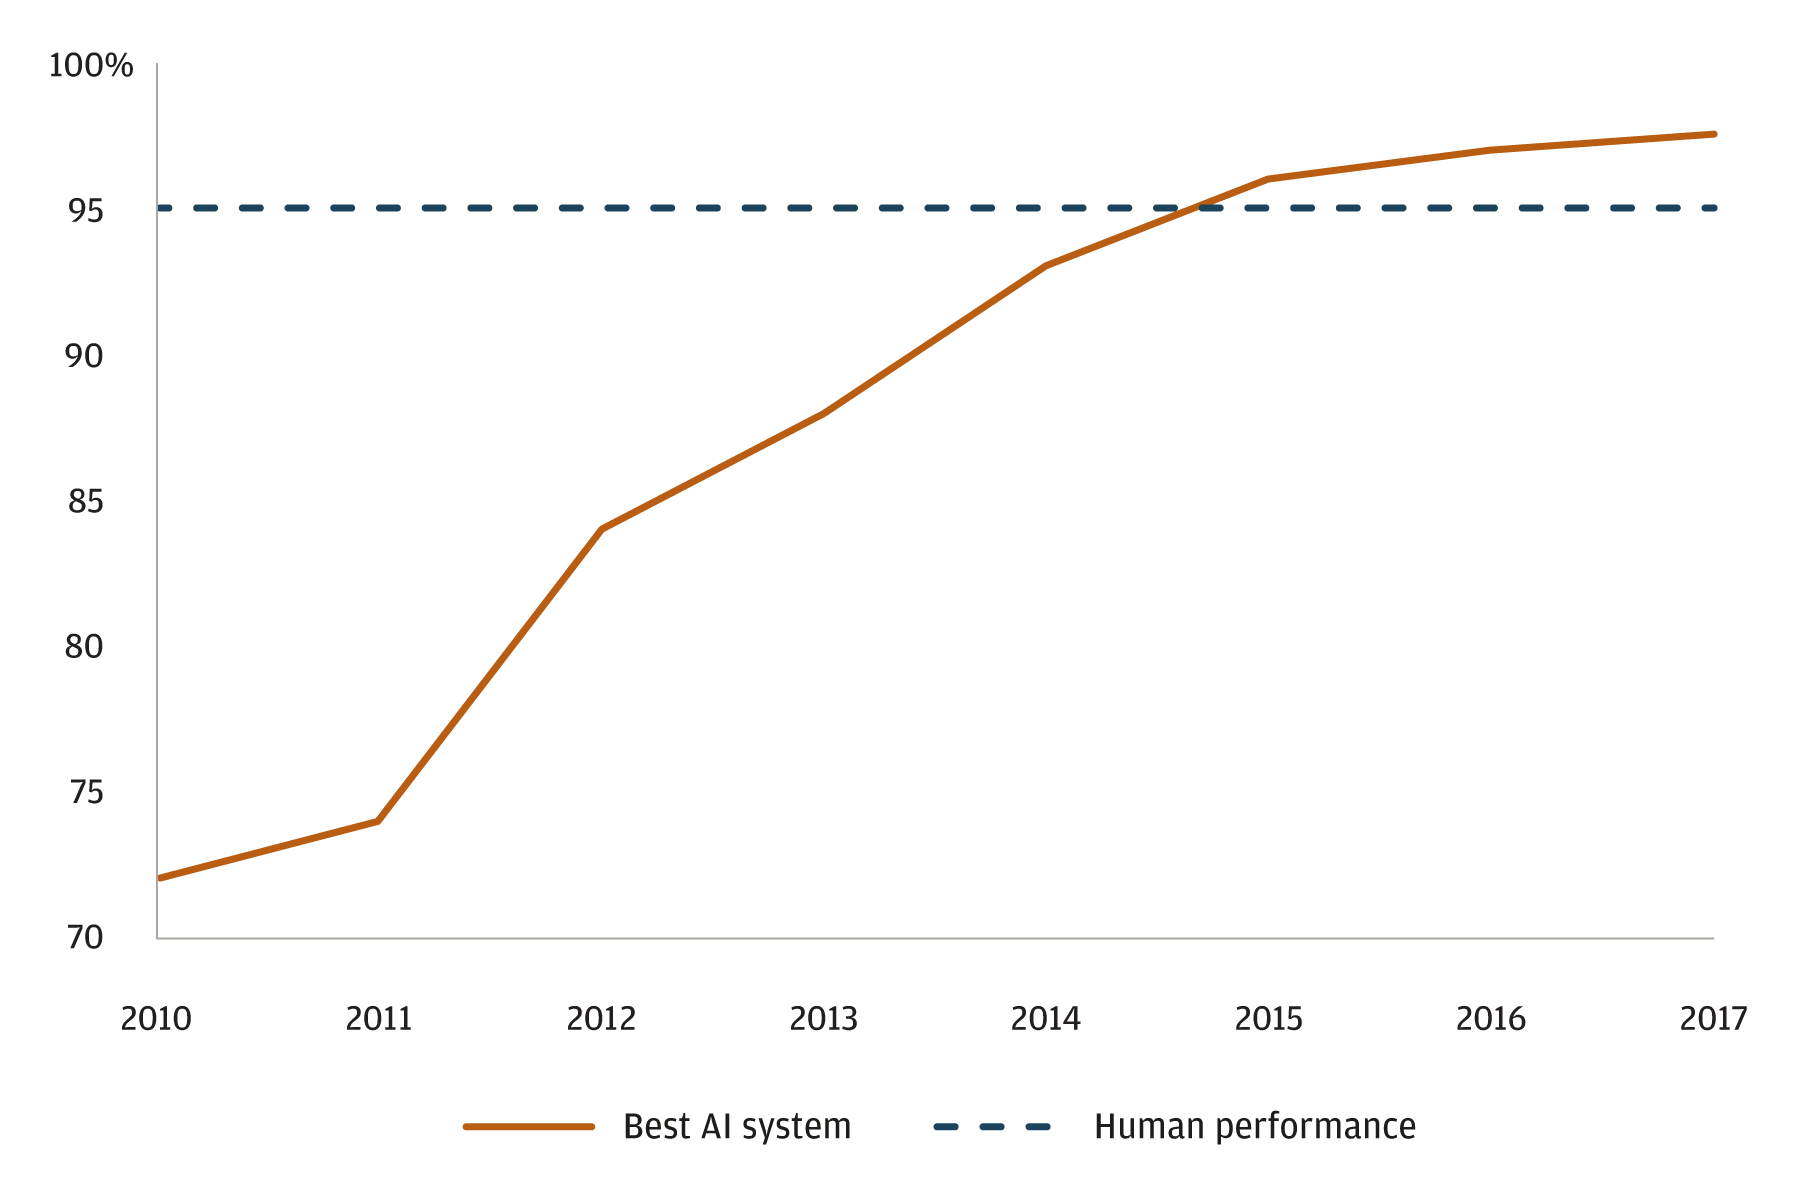 A line chart illustrating the ability of AI systems to correctly identify objects in images, with accuracy shown as a percentage, where the best AI system is compared to human performance by year from 2010 to 2017.